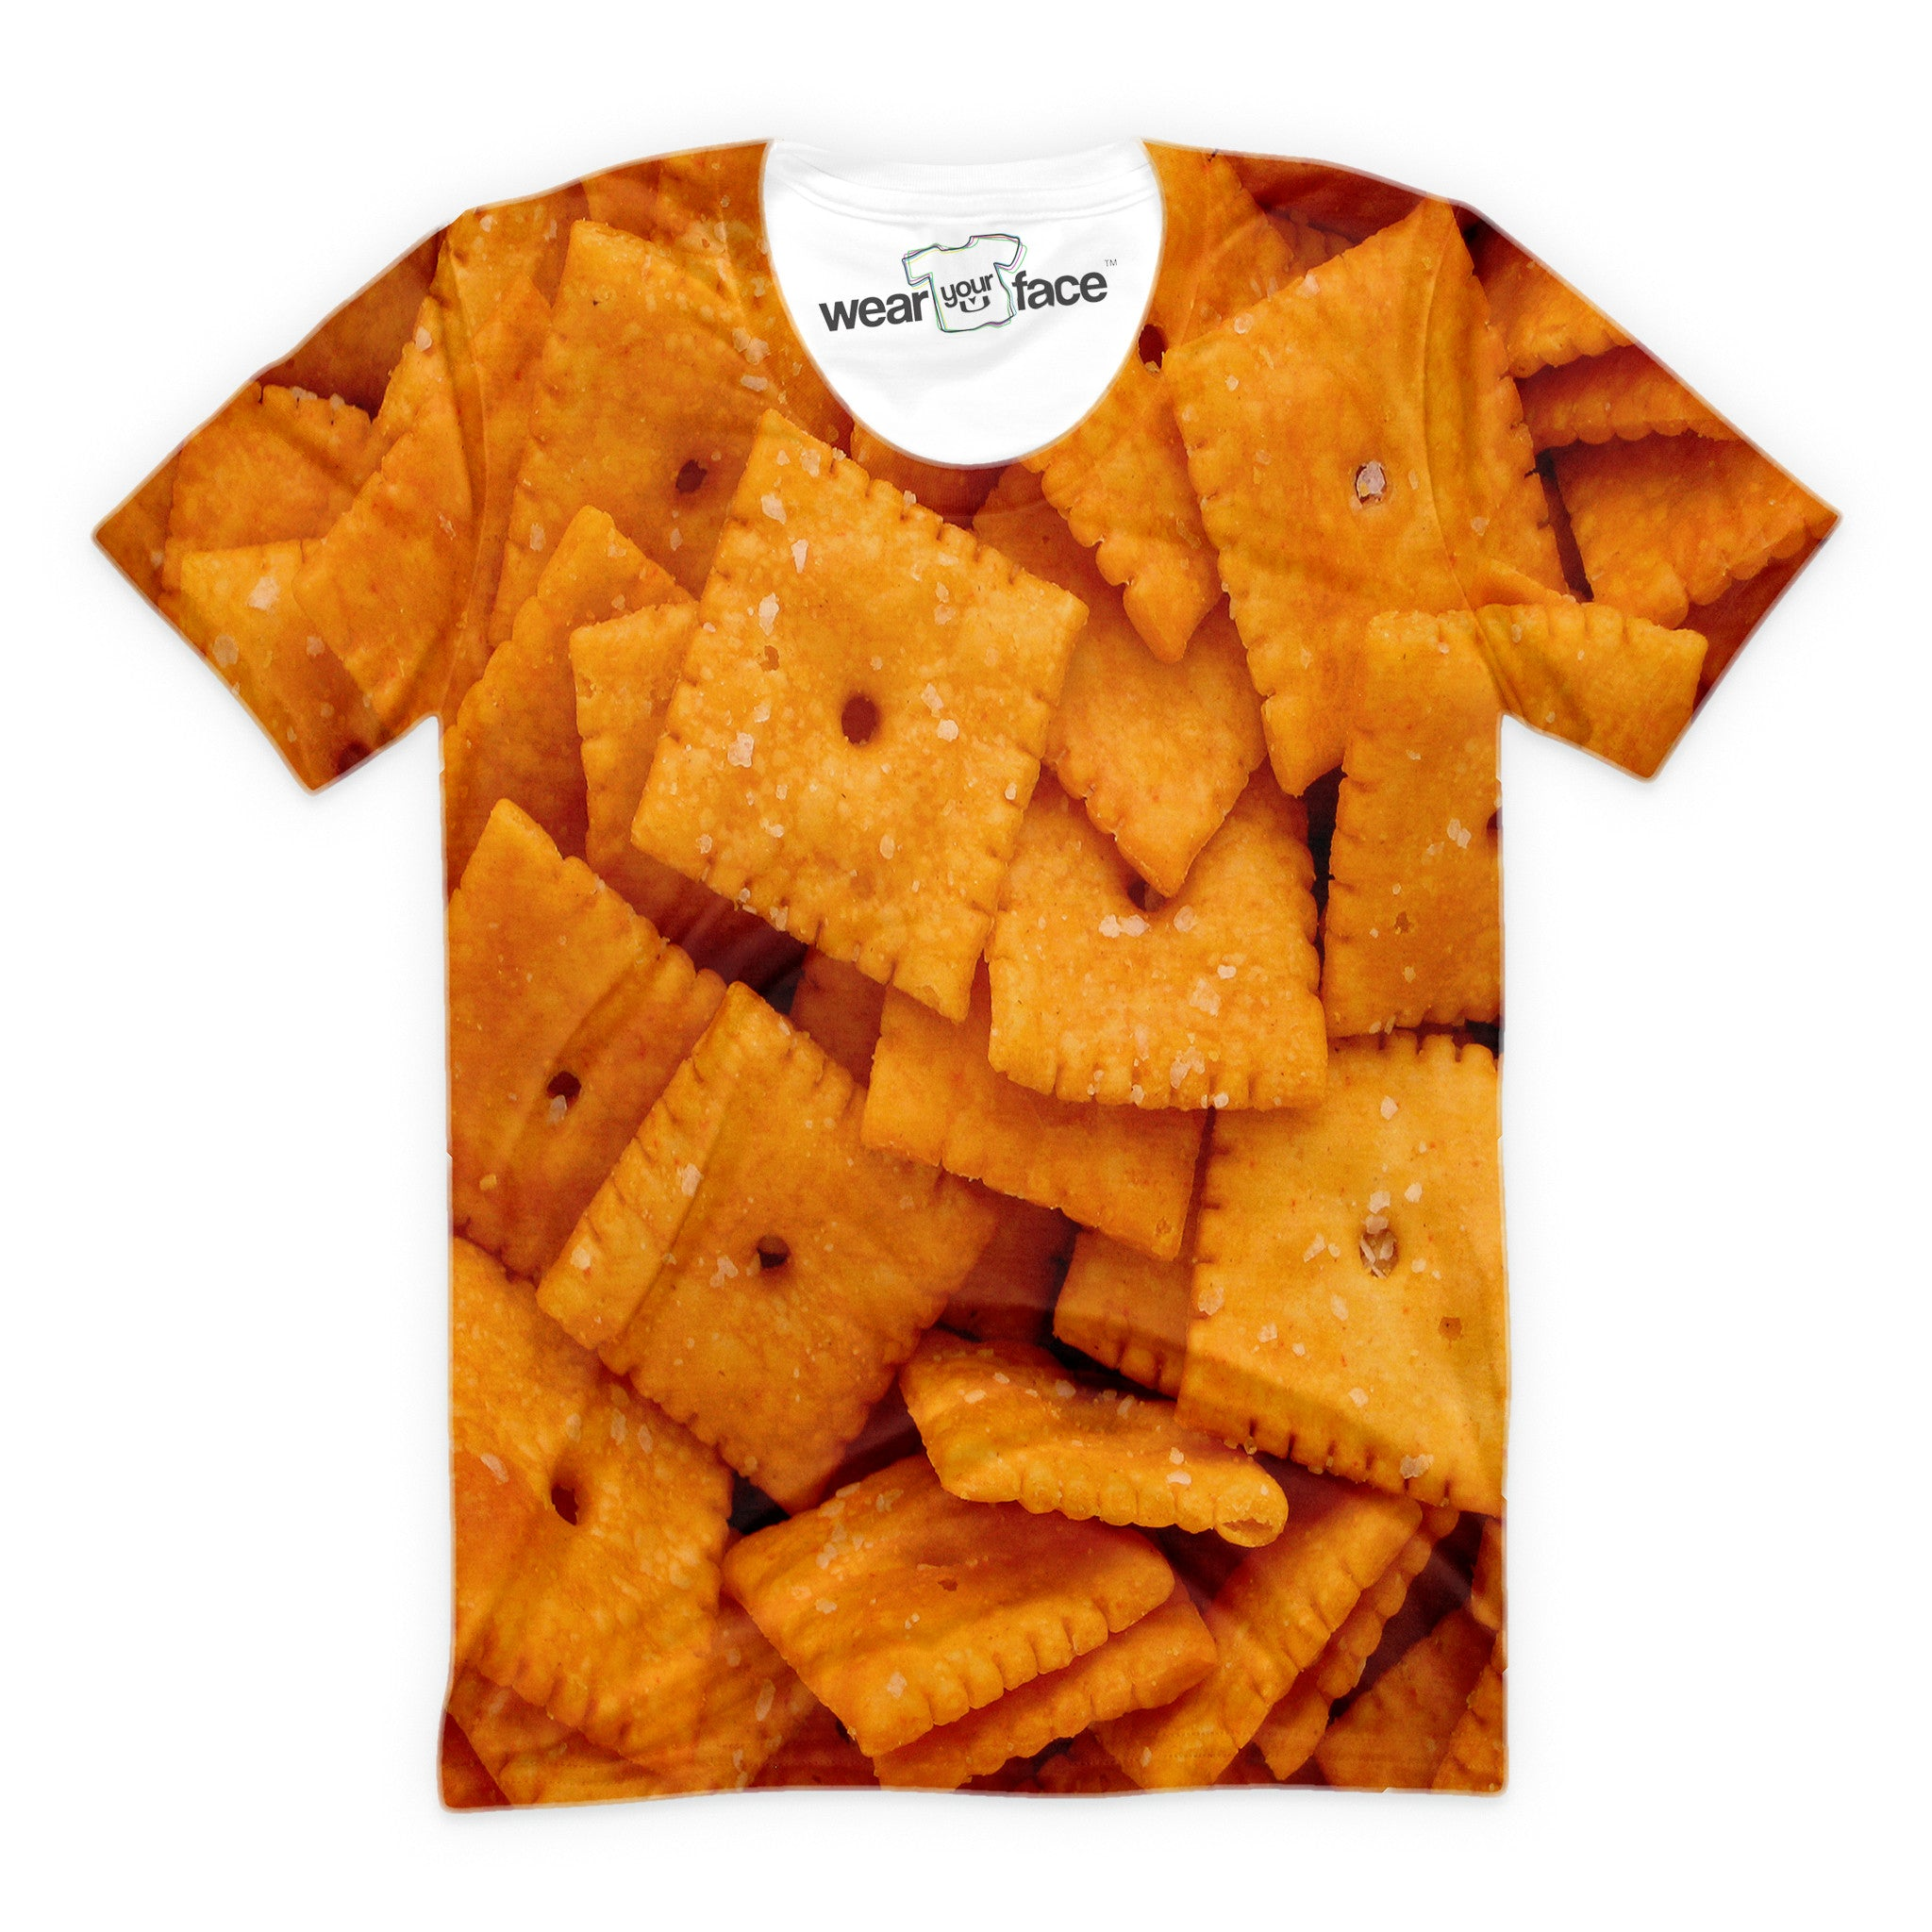 Cheez-It's T-Shirt